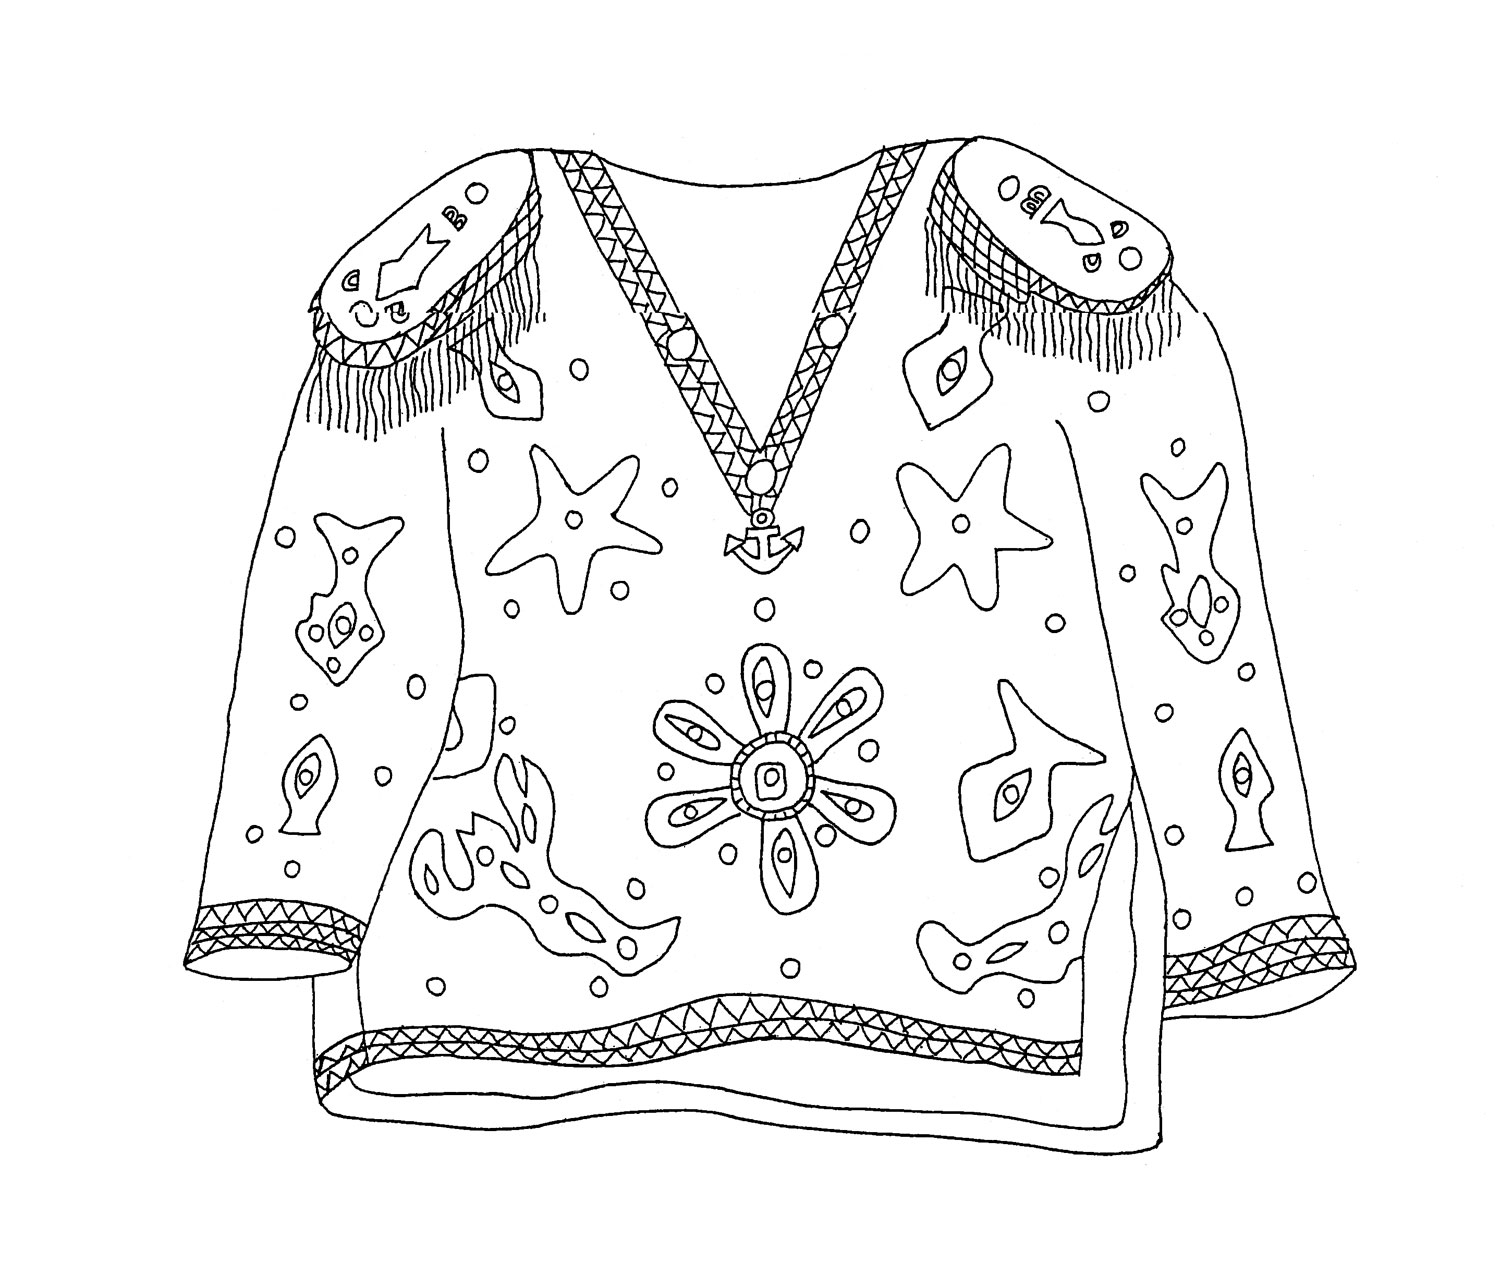 Sailor shirt design by Narcenio Gomez, front view. Illustration courtesy The Carnival Institute